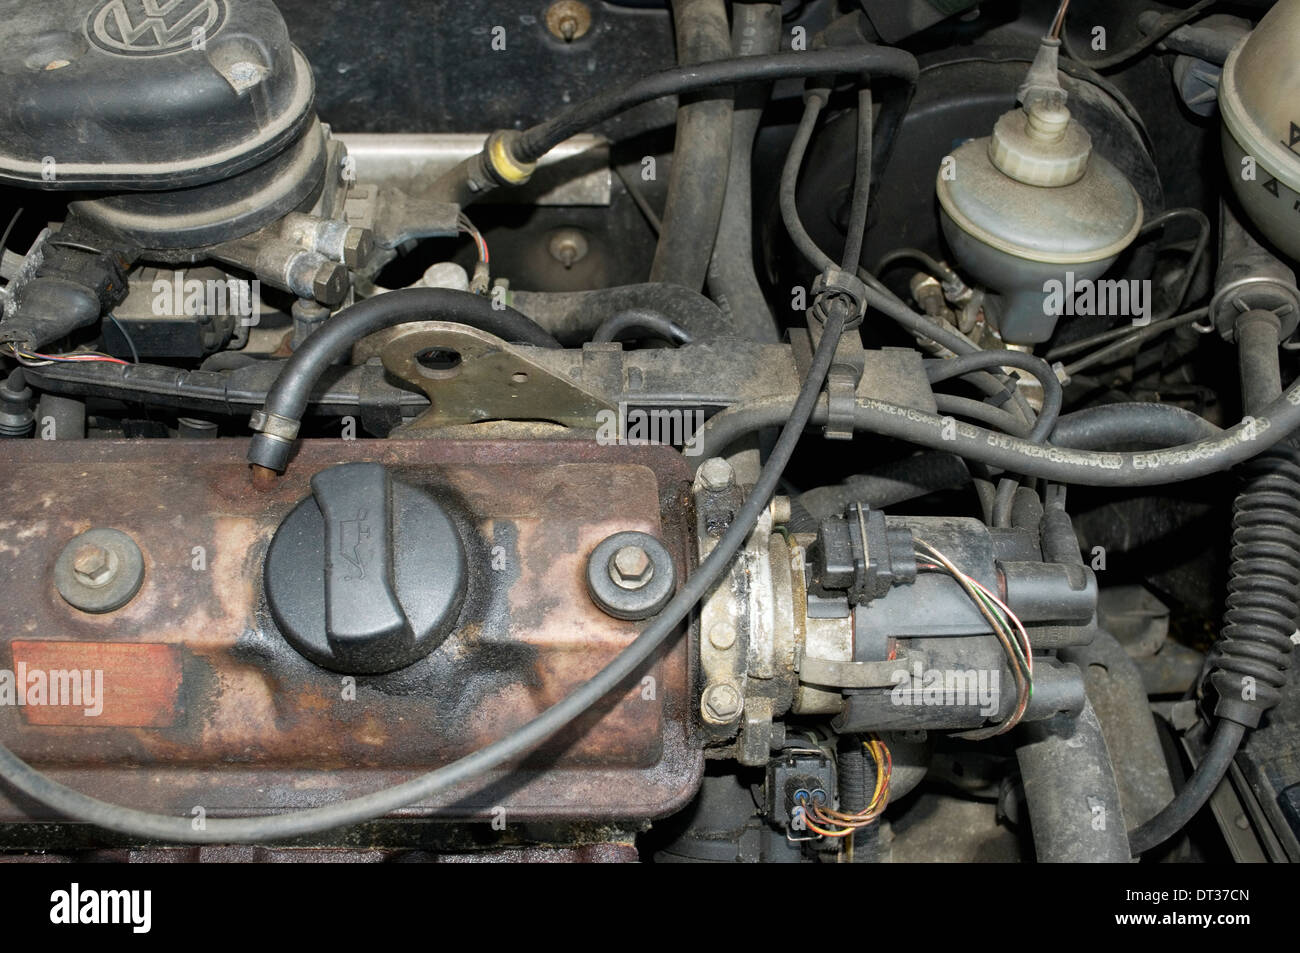 Components Car Stockfotos & Components Car Bilder - Seite 8 - Alamy